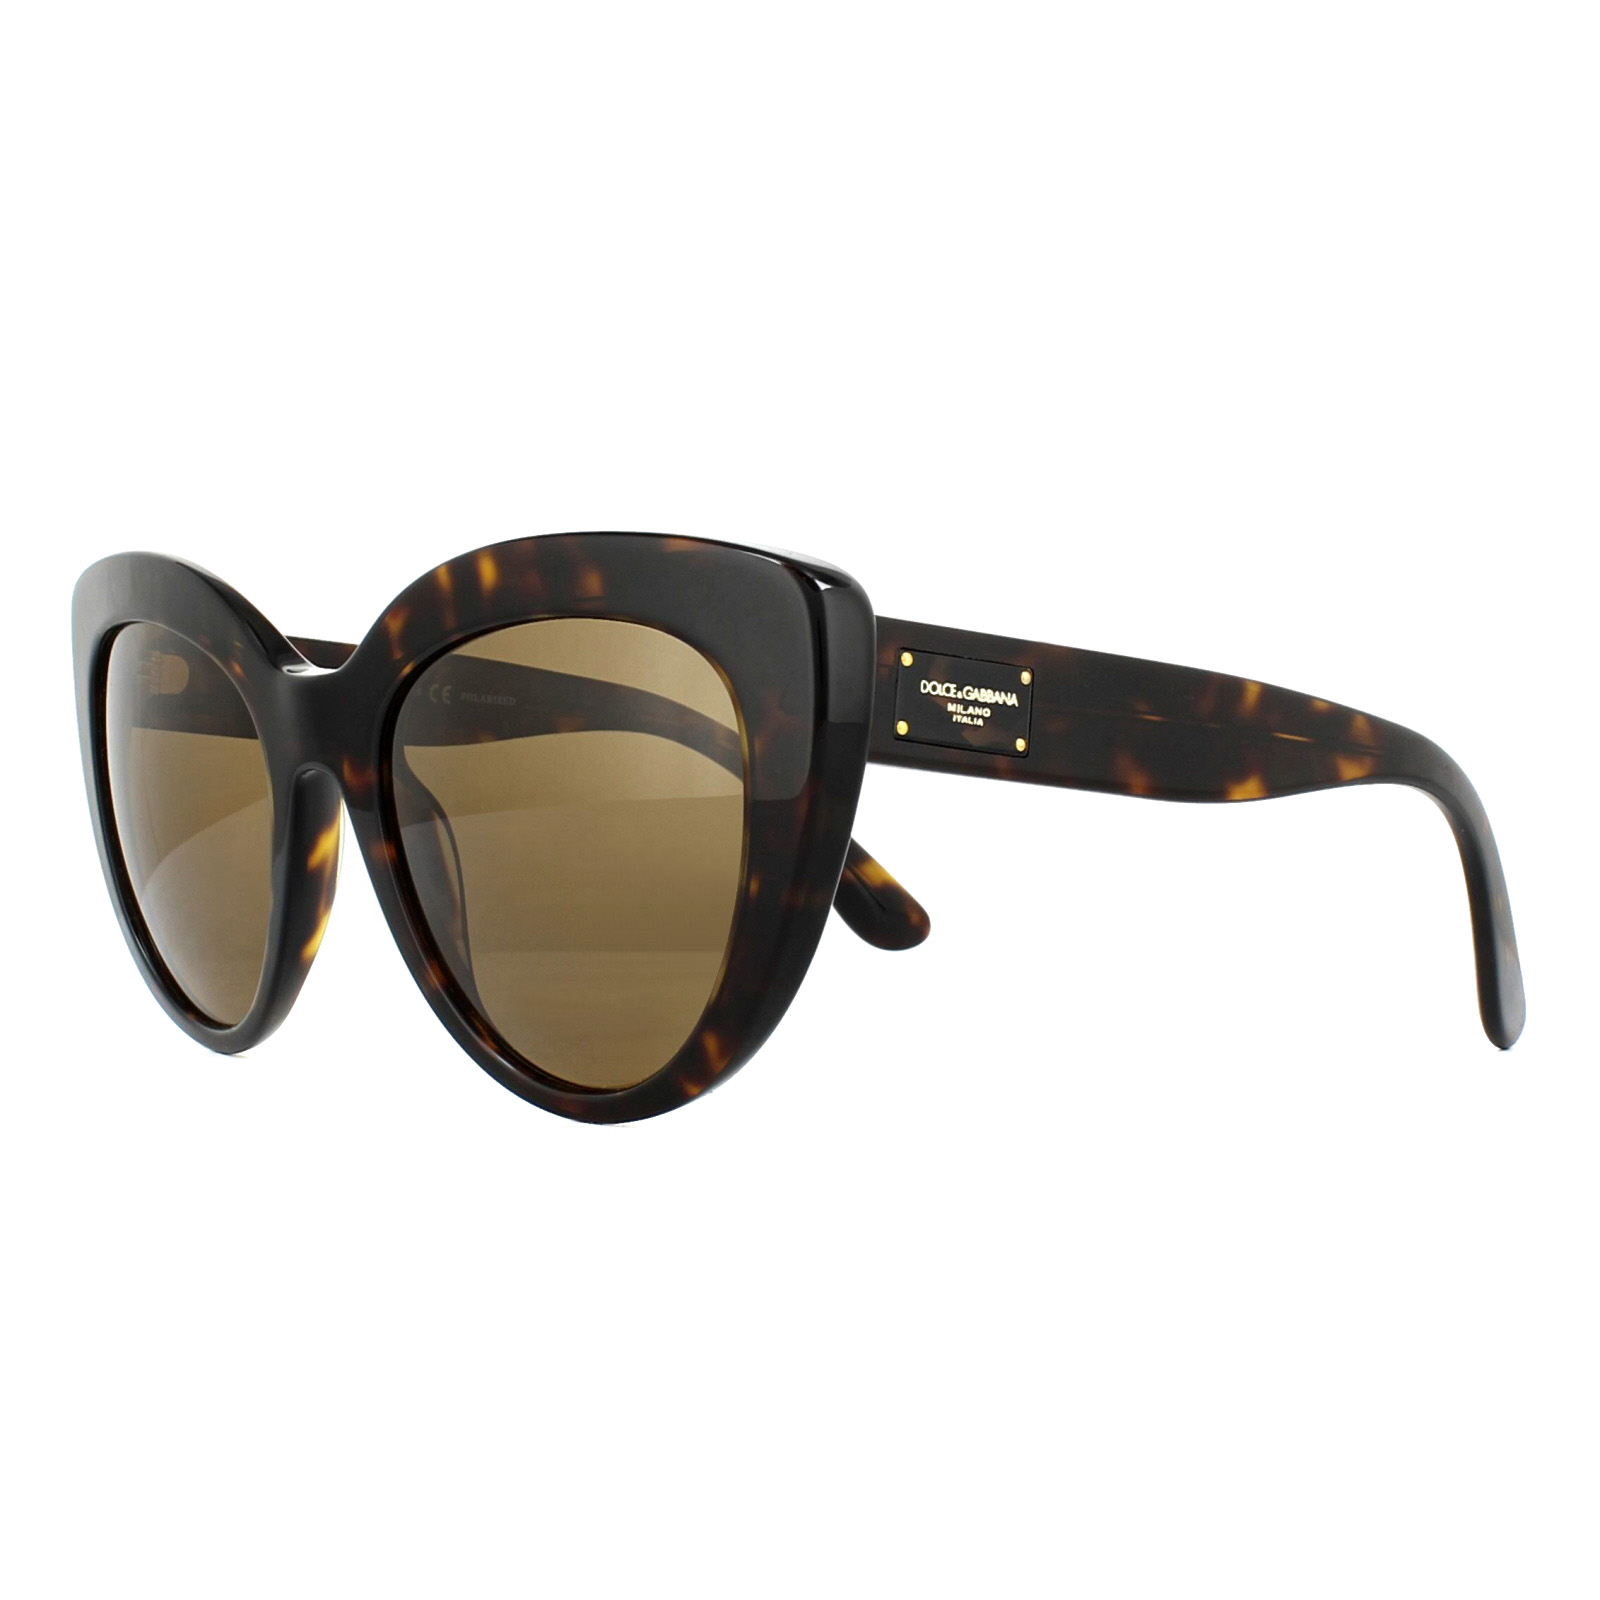 a50e4062b5c2 Details about Dolce & Gabbana Sunglasses 4287 502-83 Havana Brown Polarized